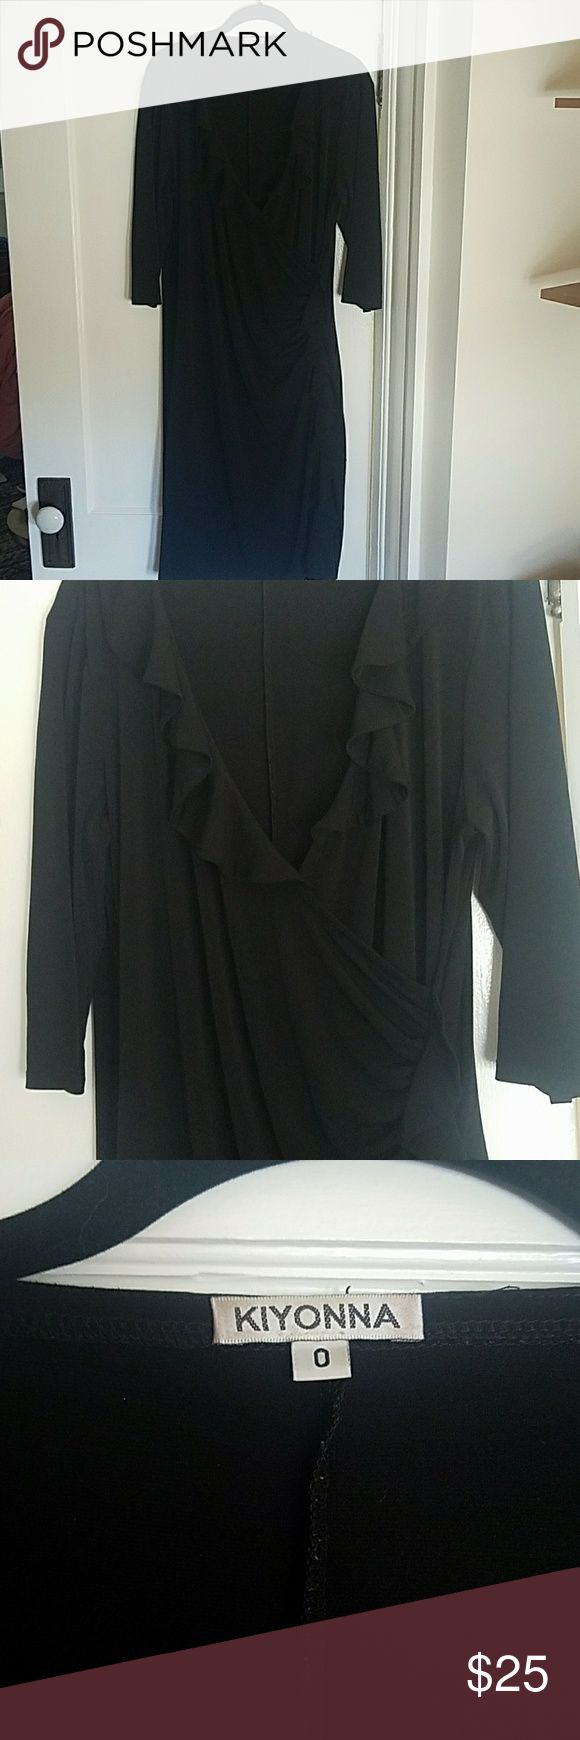 Kiyonna Perfect Little Black Dress Size 0 (10-12) Little black dresses never go out of style, even if they're discontinued like this little lady!  Old school Kiyonna LBD in their Size 0 (10-12).  Cinch waist with soft ruffle along plunging neckline and down the side slit.  Hits below the knee, 3/4 sleeves.  Stretchy so it hugs every curve just right! Kiyonna Dresses